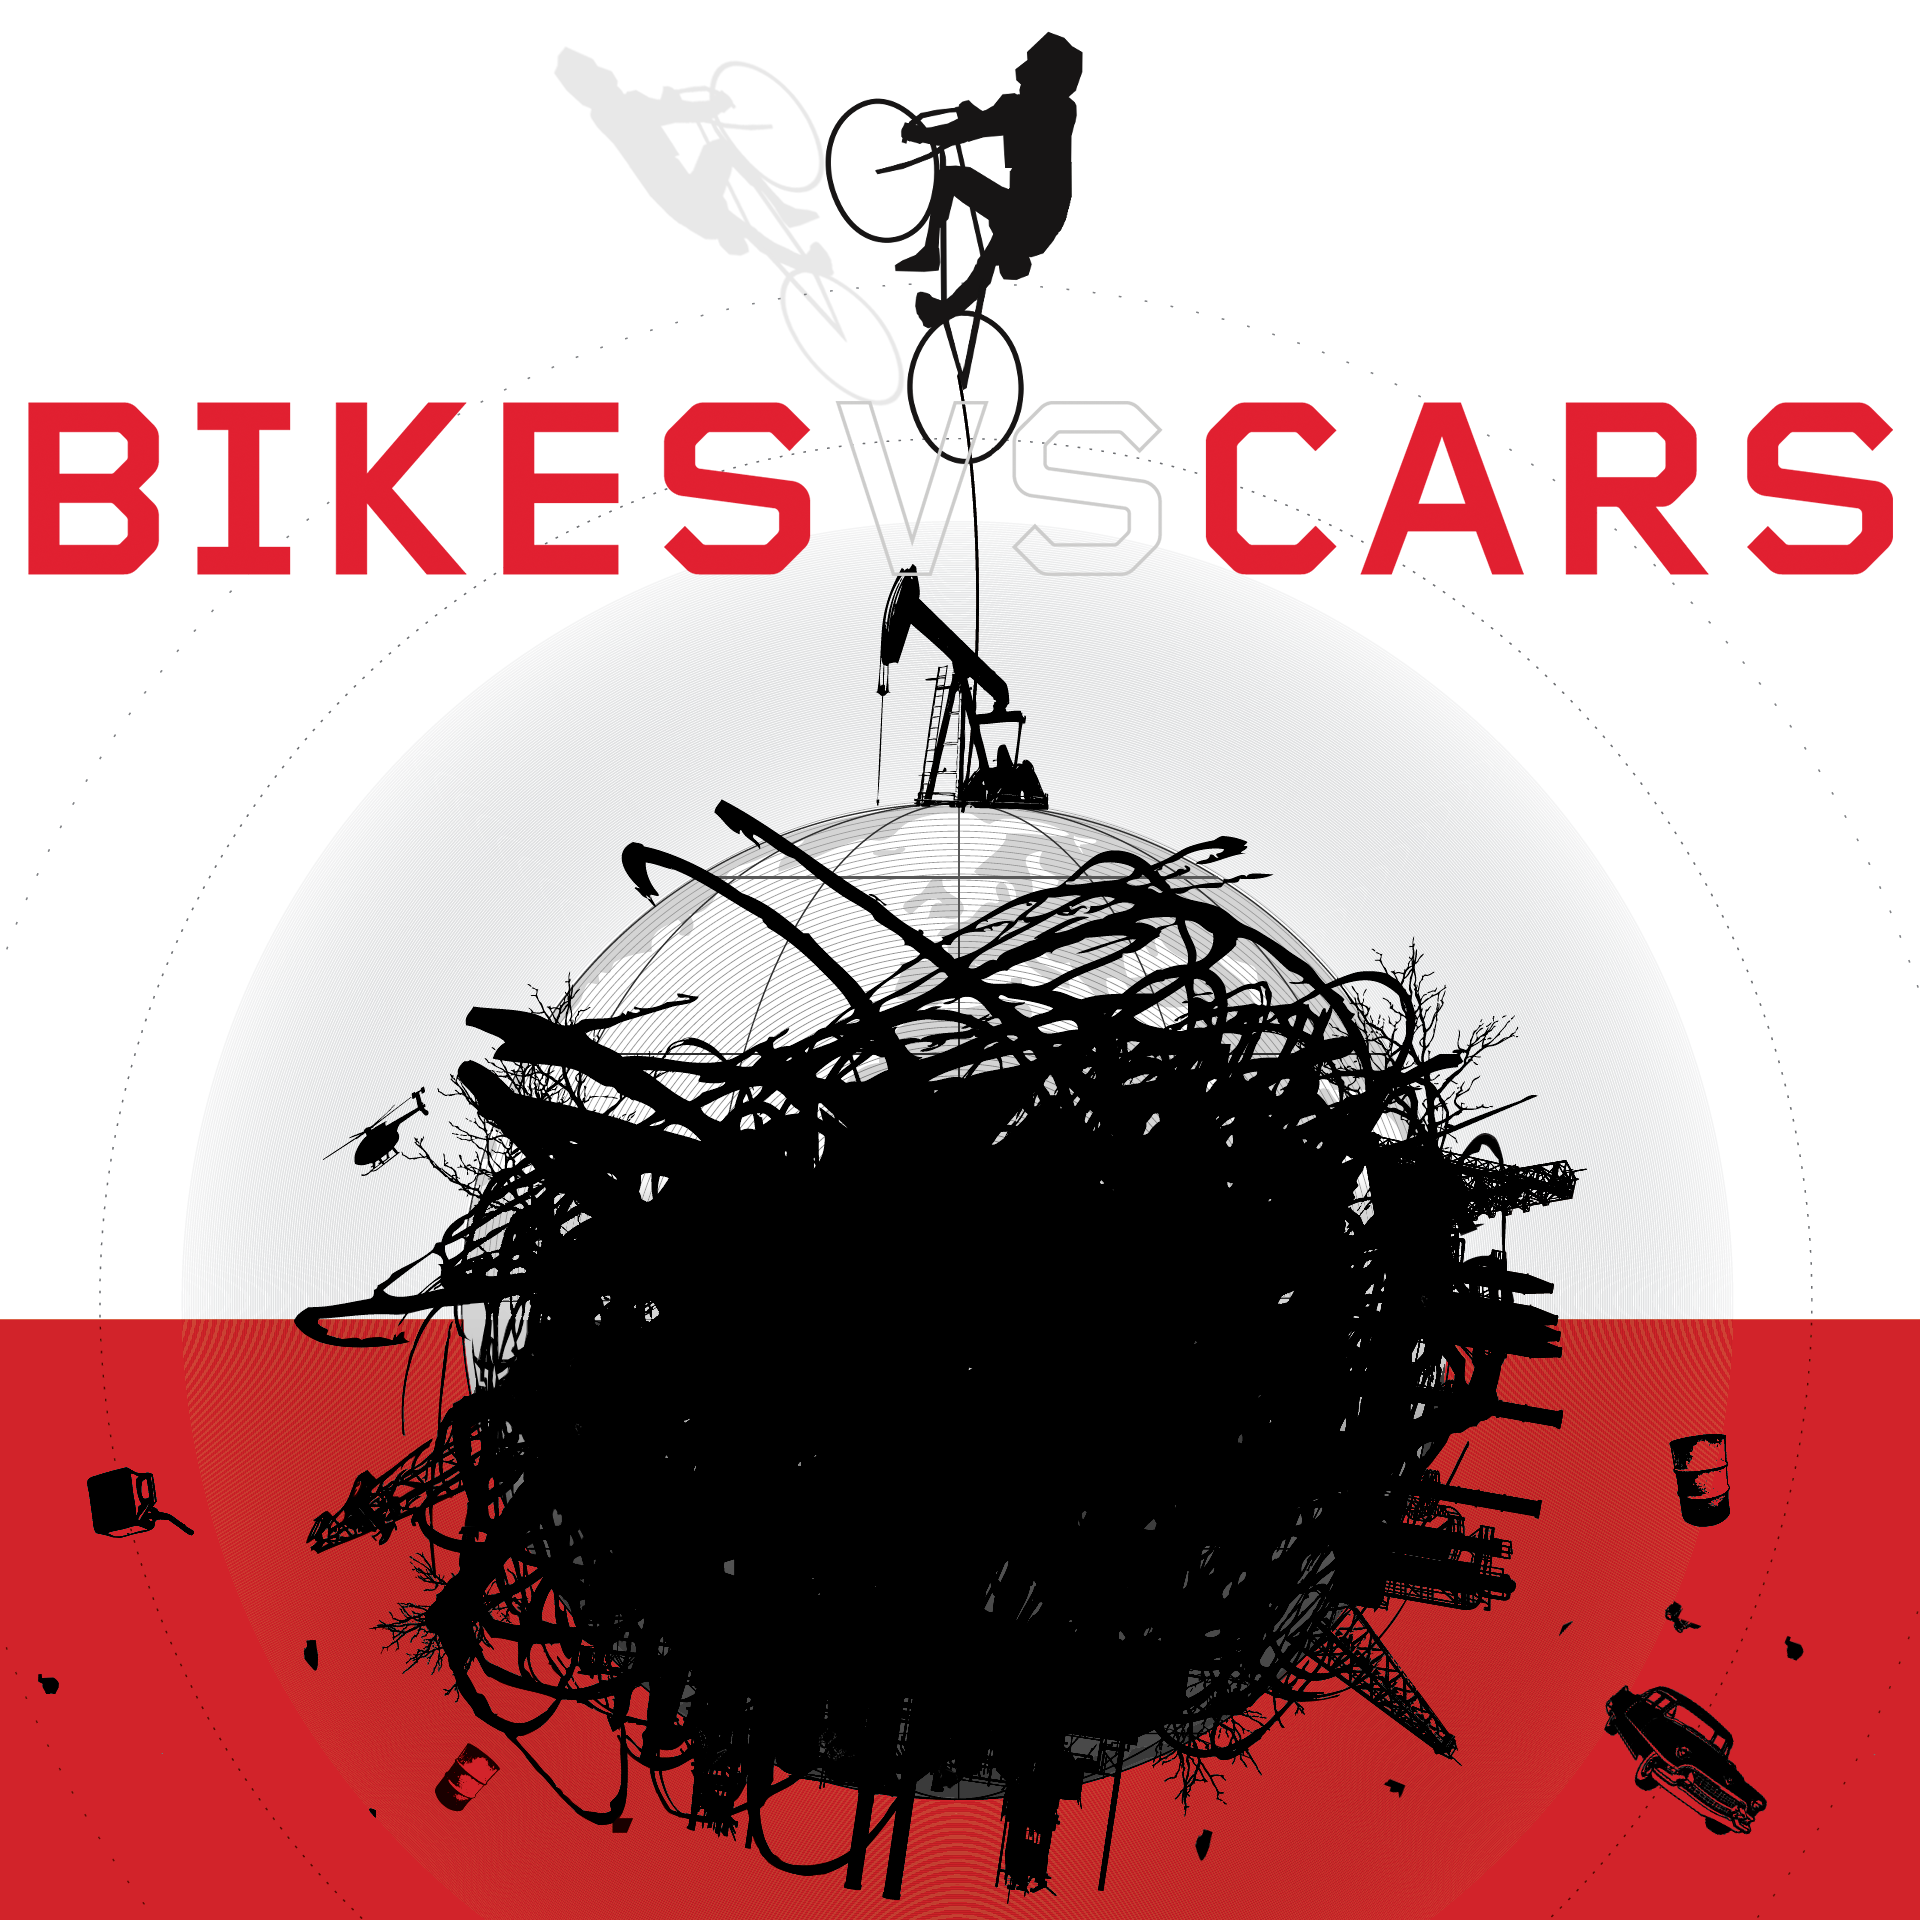 compare and contrast cars and bicycles